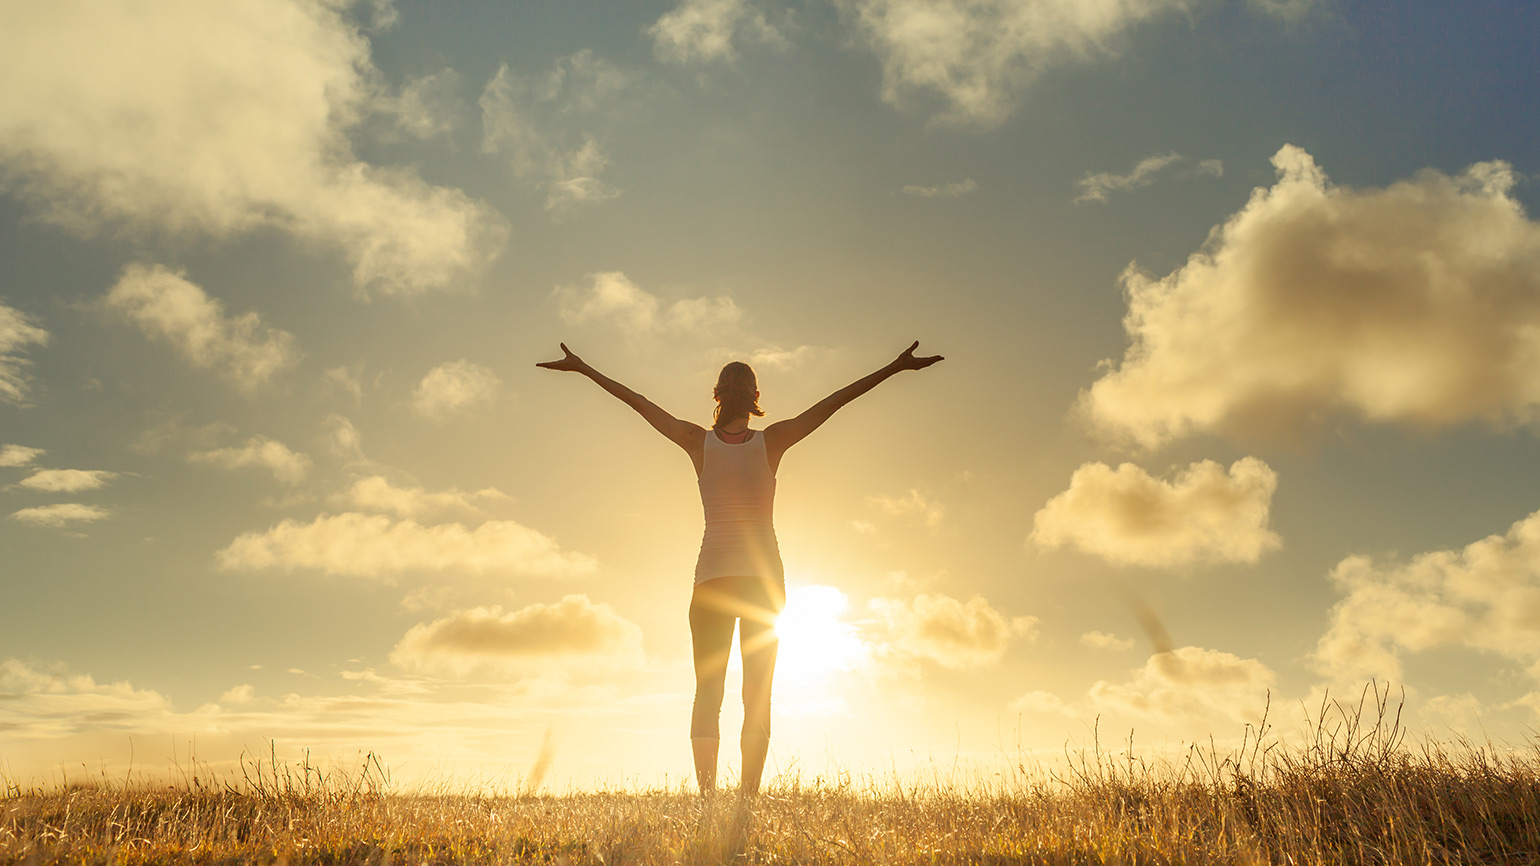 A woman greets the sunrise, arms upraised